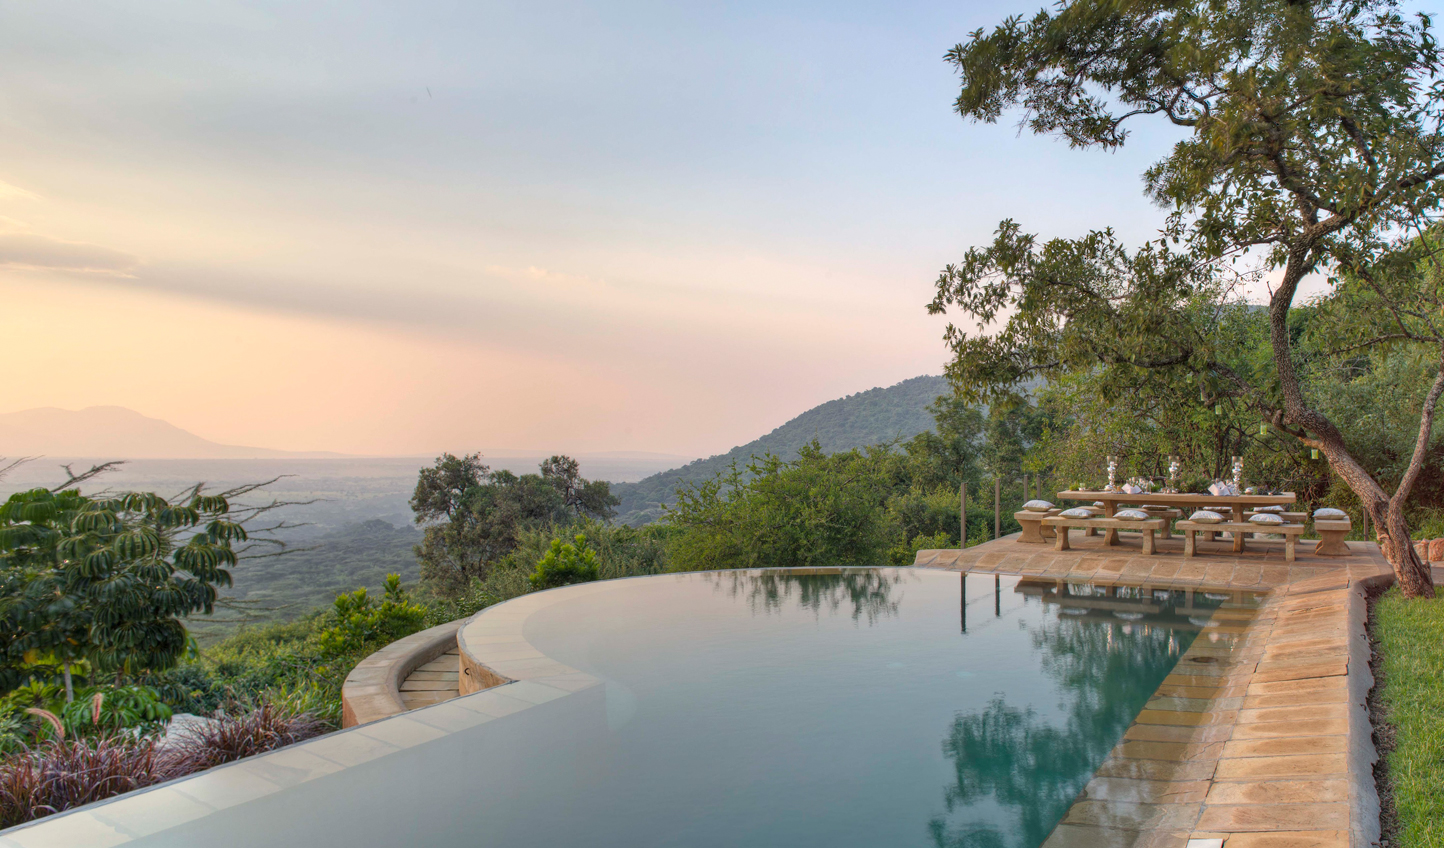 Make yourself at home in the Bush Villa and enjoy views across the plains from the infinity pool